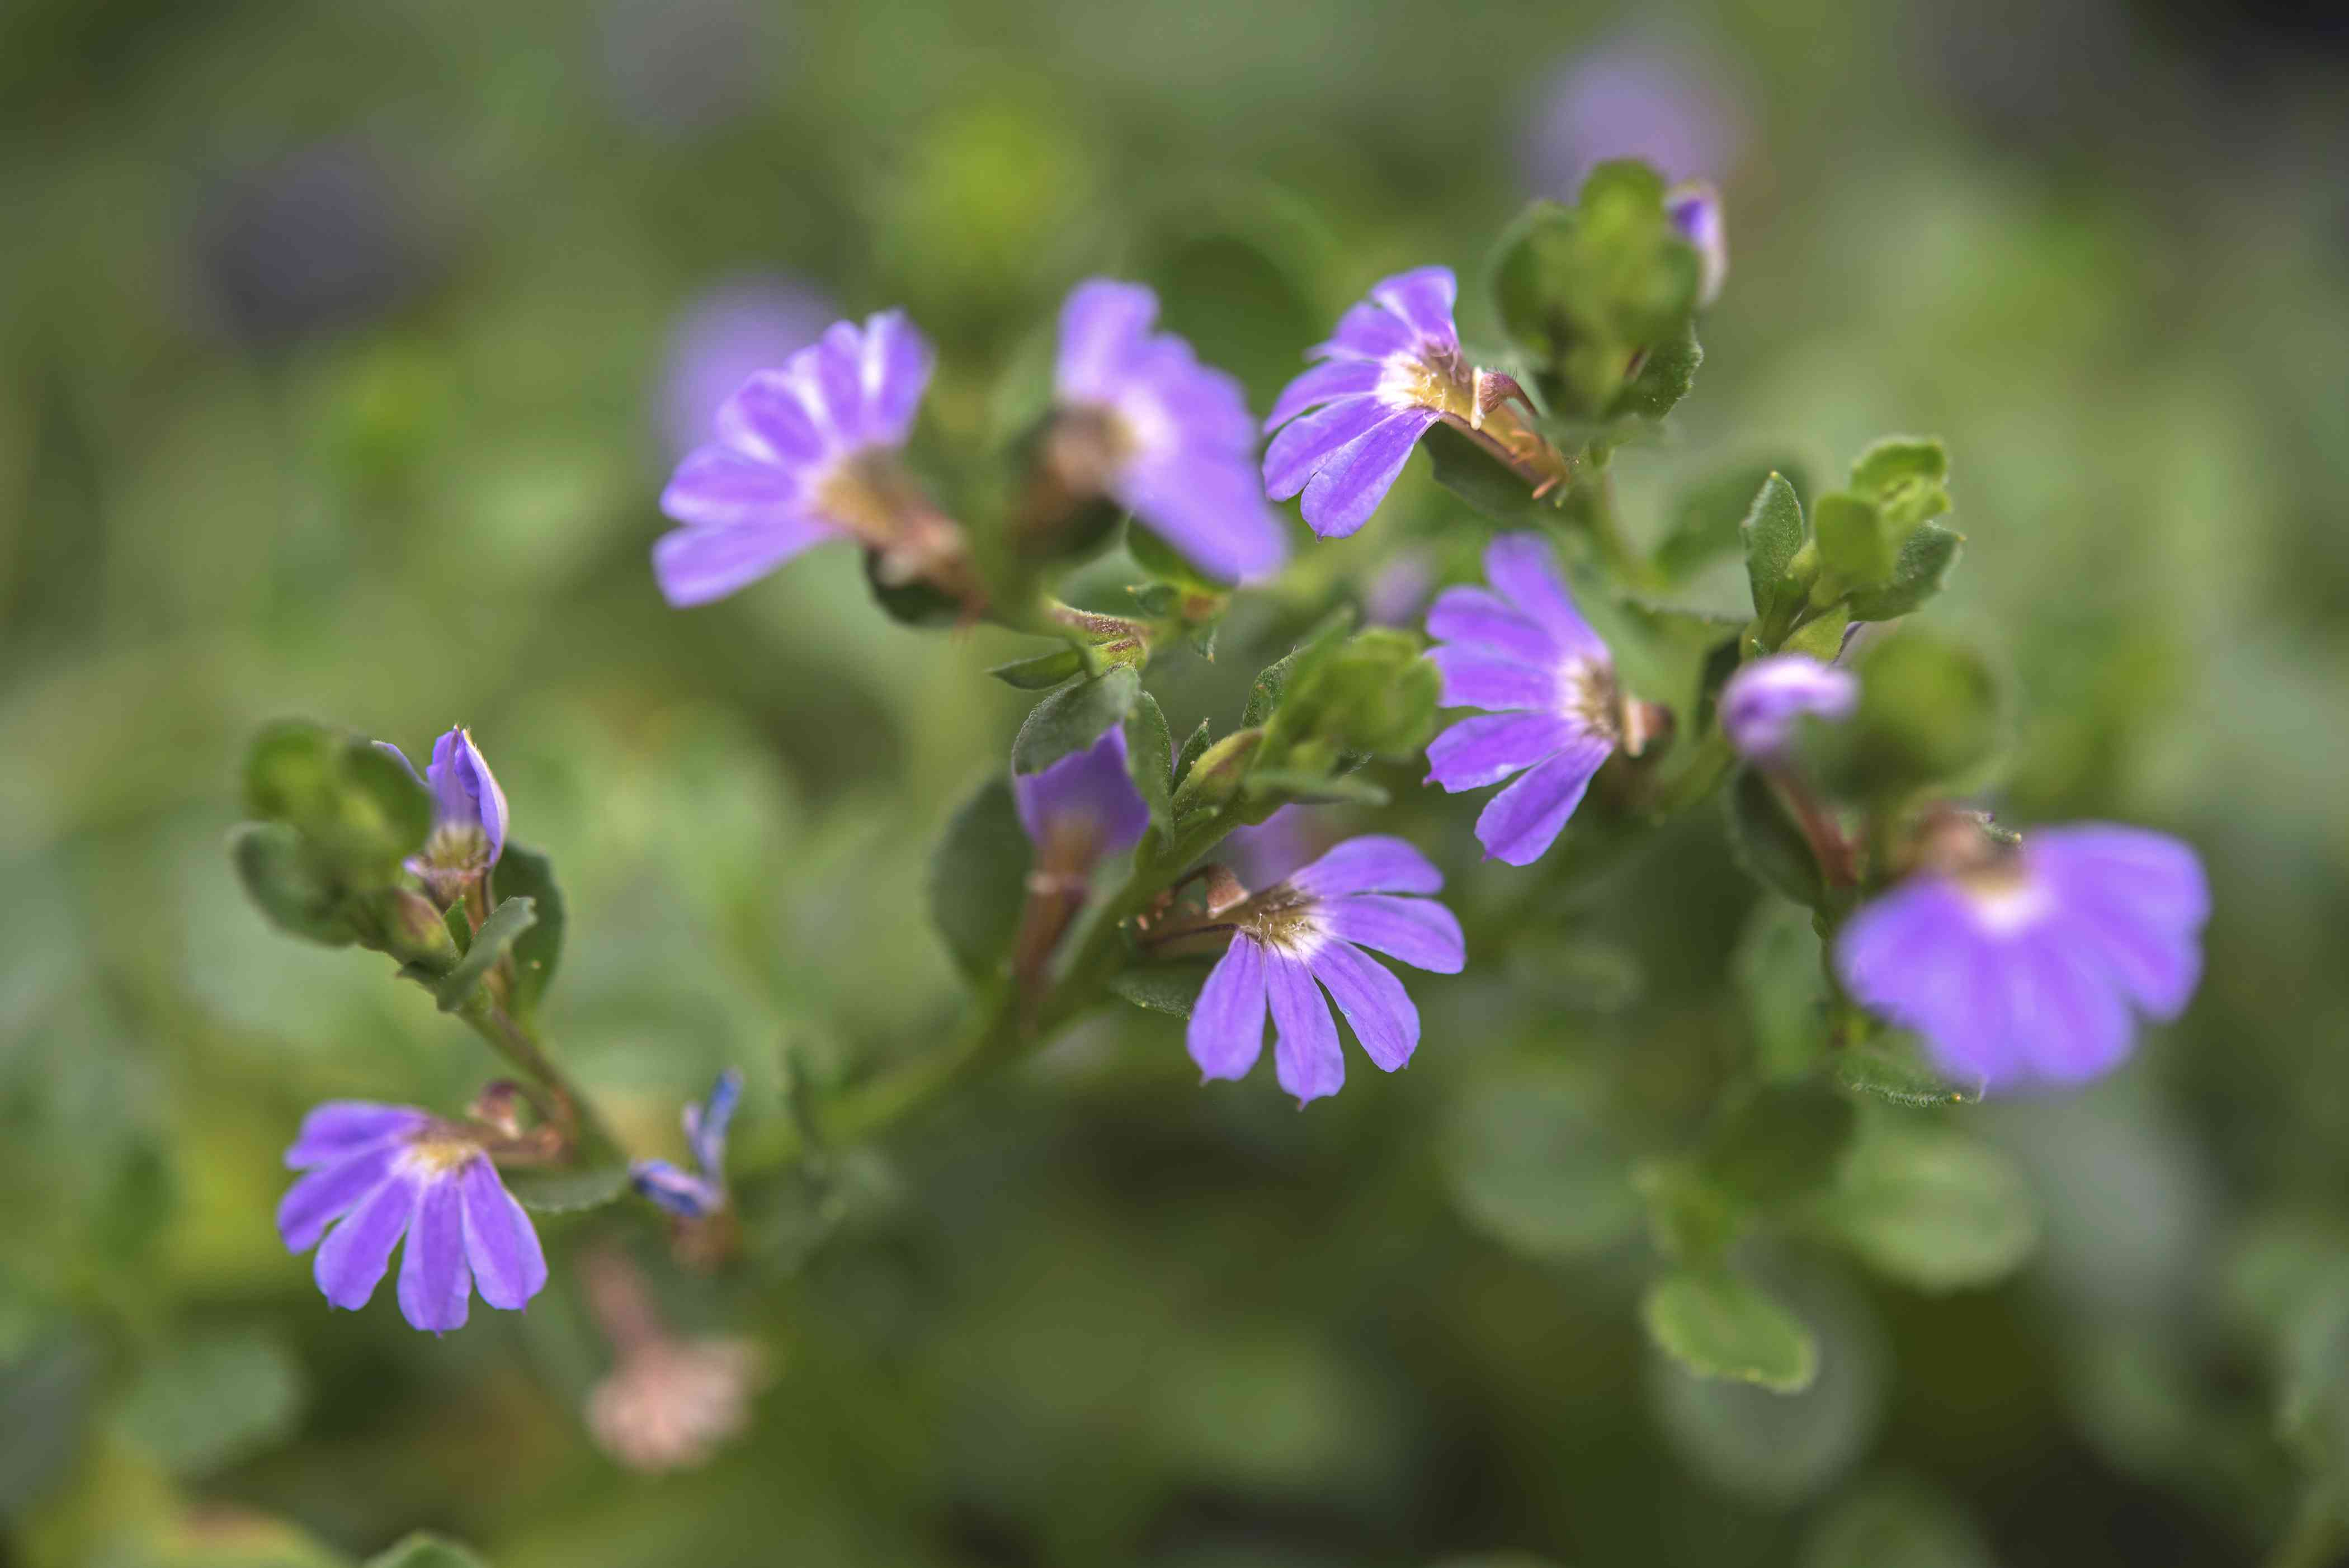 Scaevola plant with small purple flowers and leaves closeup